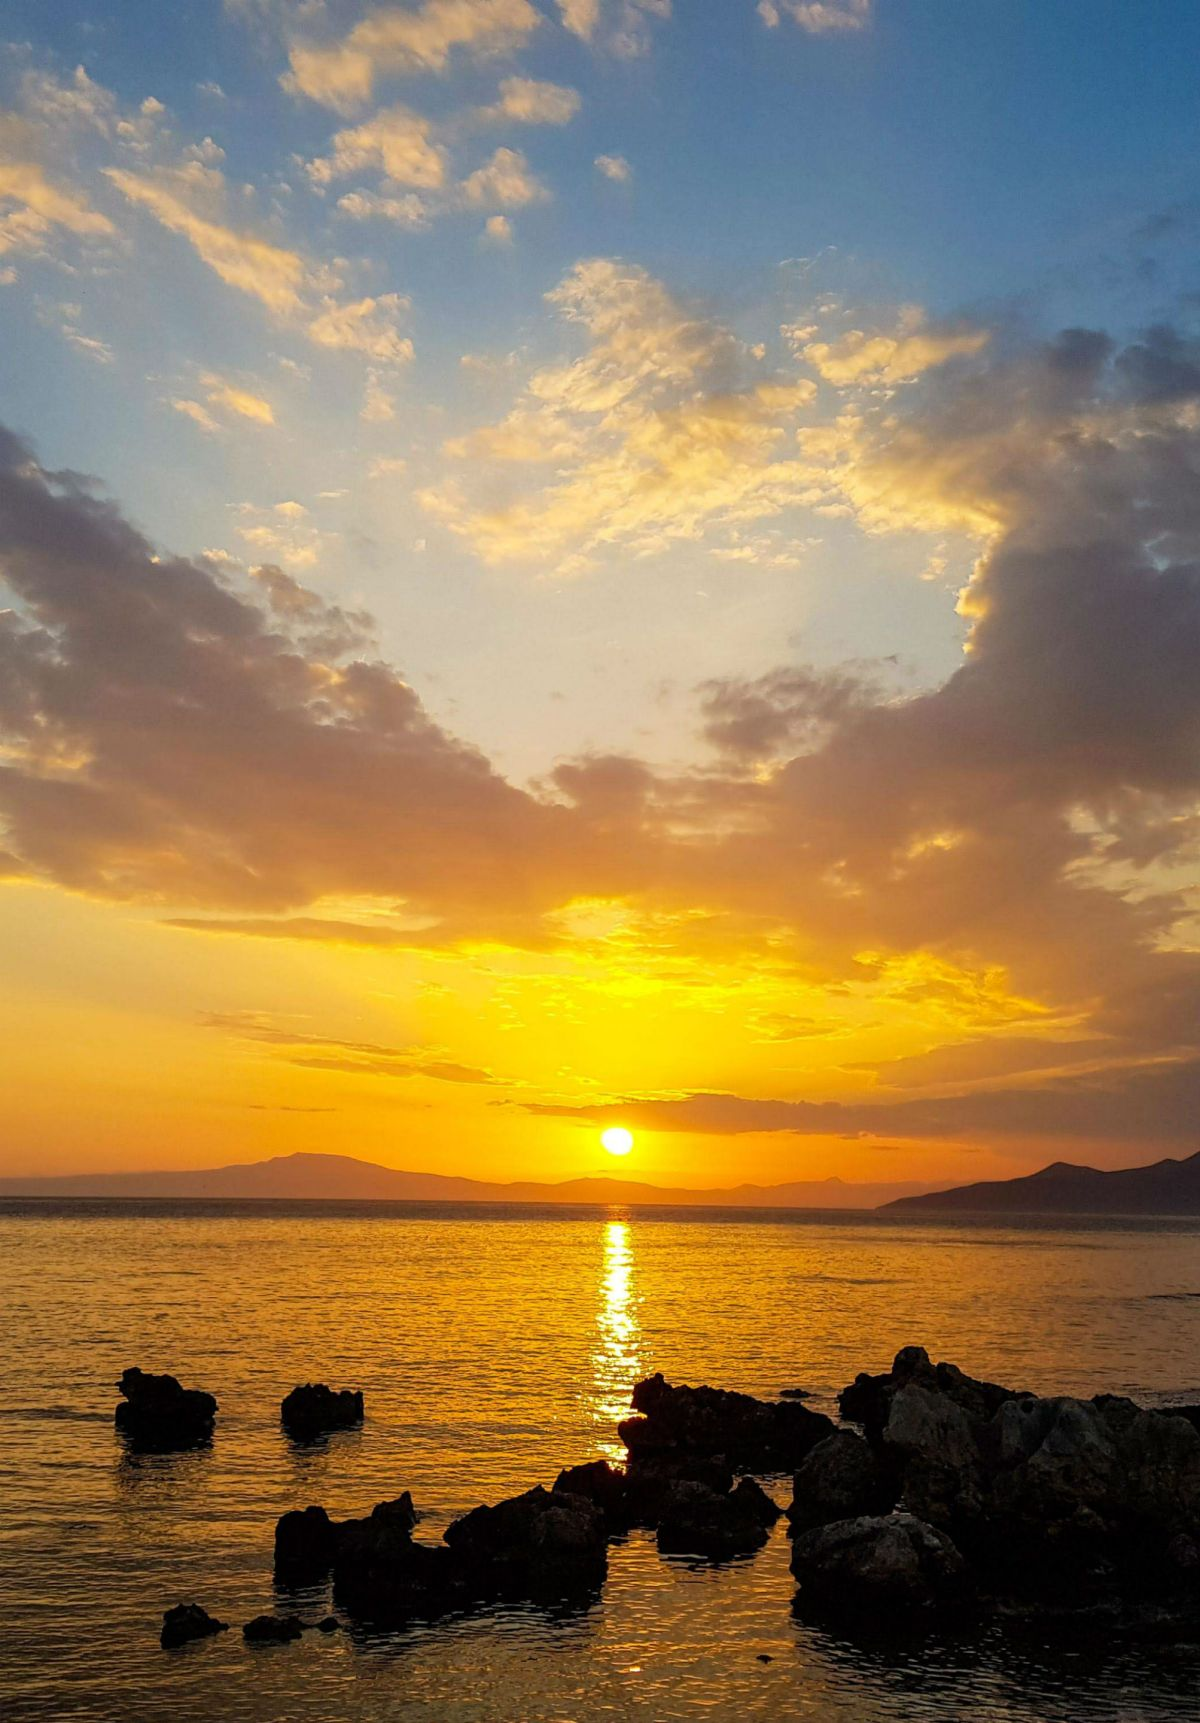 Sunsets in Peloponnese don't miss too many of them